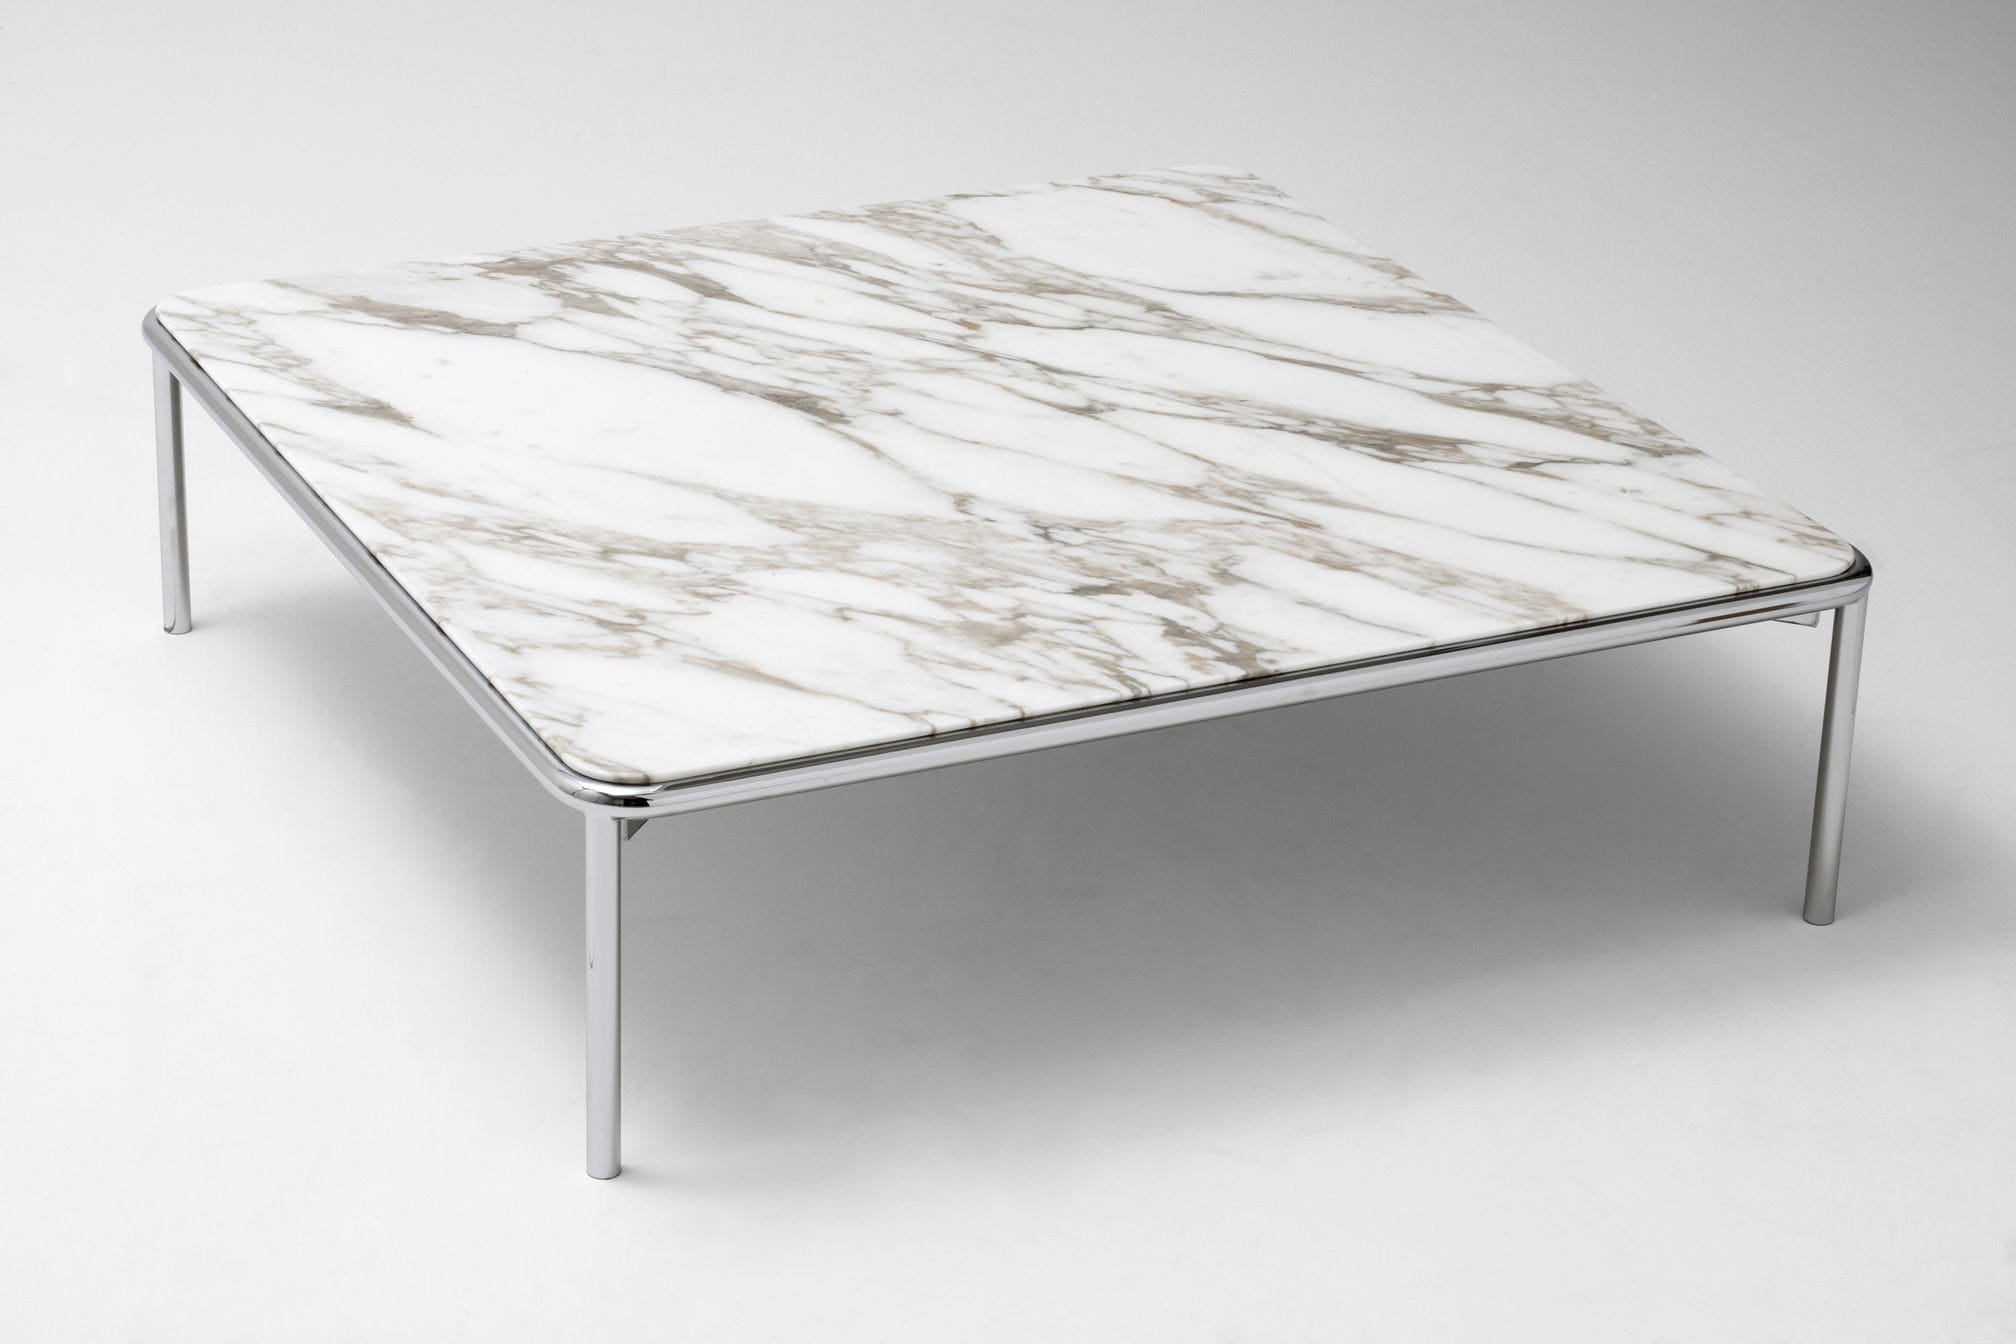 Contemporary coffee table steel marble lacquered MDF UP by